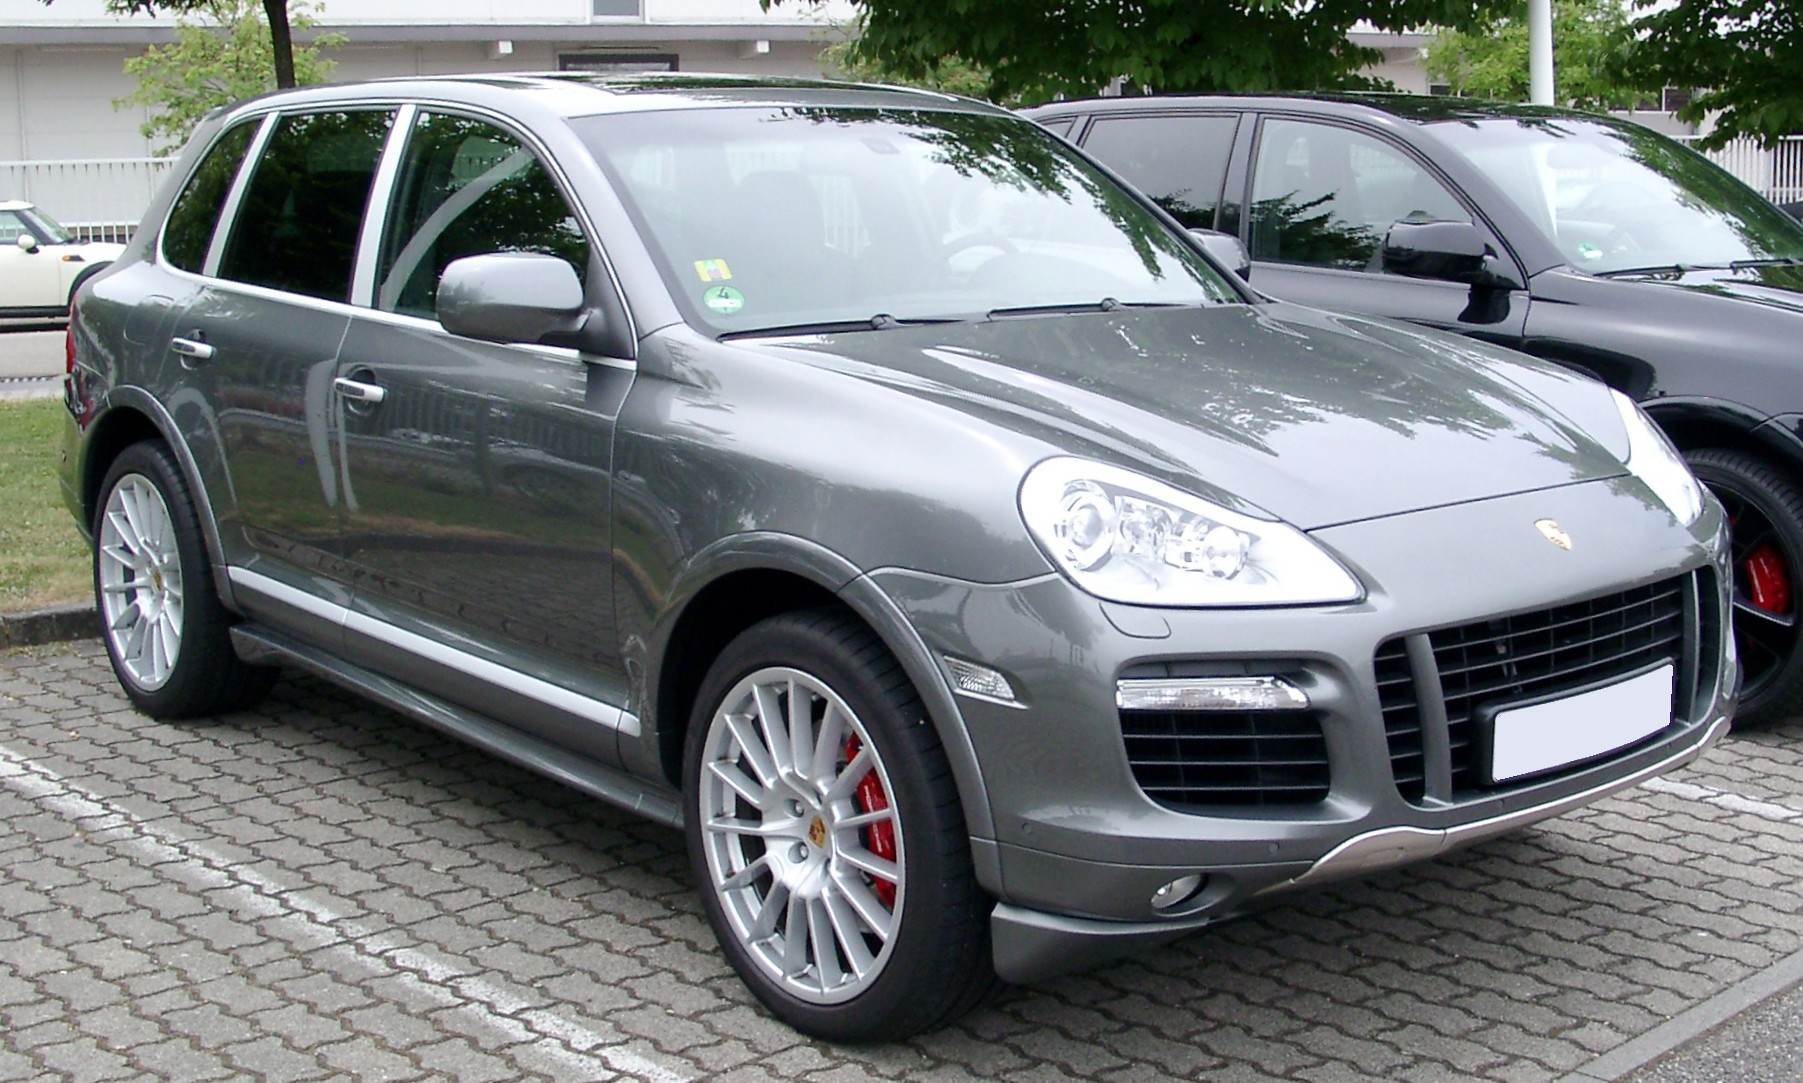 porsche cayenne turbo s 2008 review amazing pictures and images look at the car. Black Bedroom Furniture Sets. Home Design Ideas